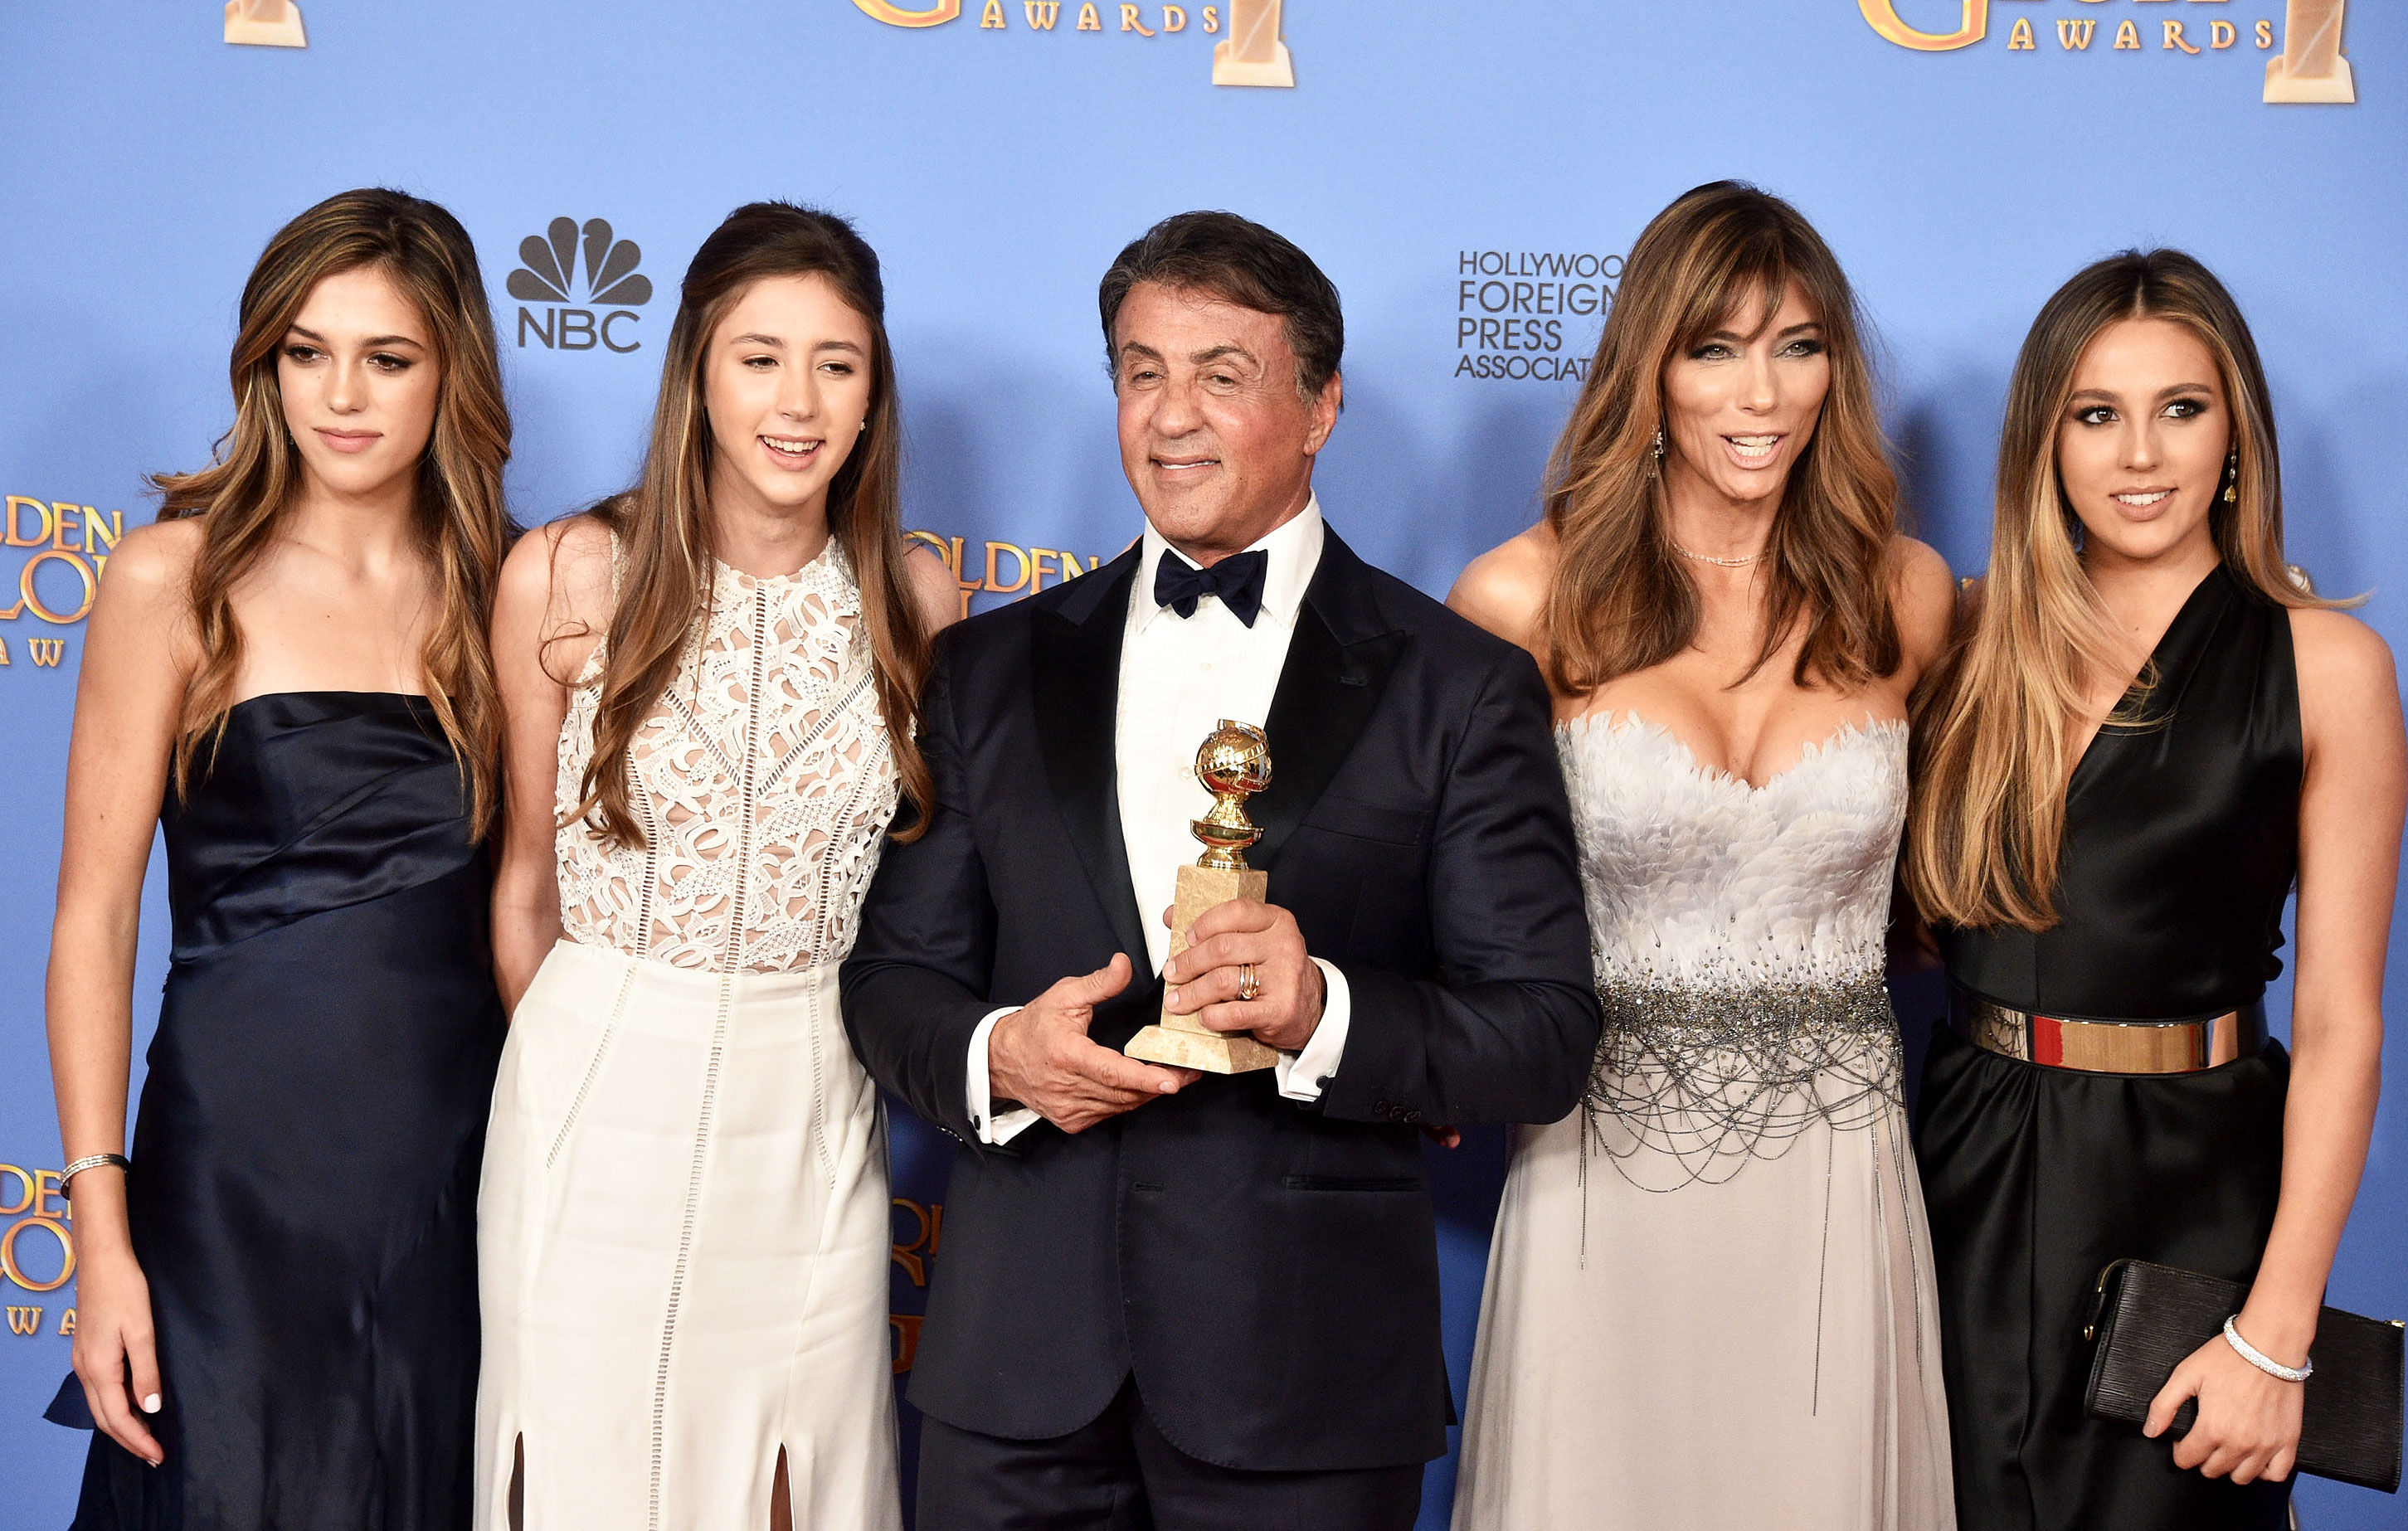 Golden Globes 2016 Sylvester Stallone Brought His Family